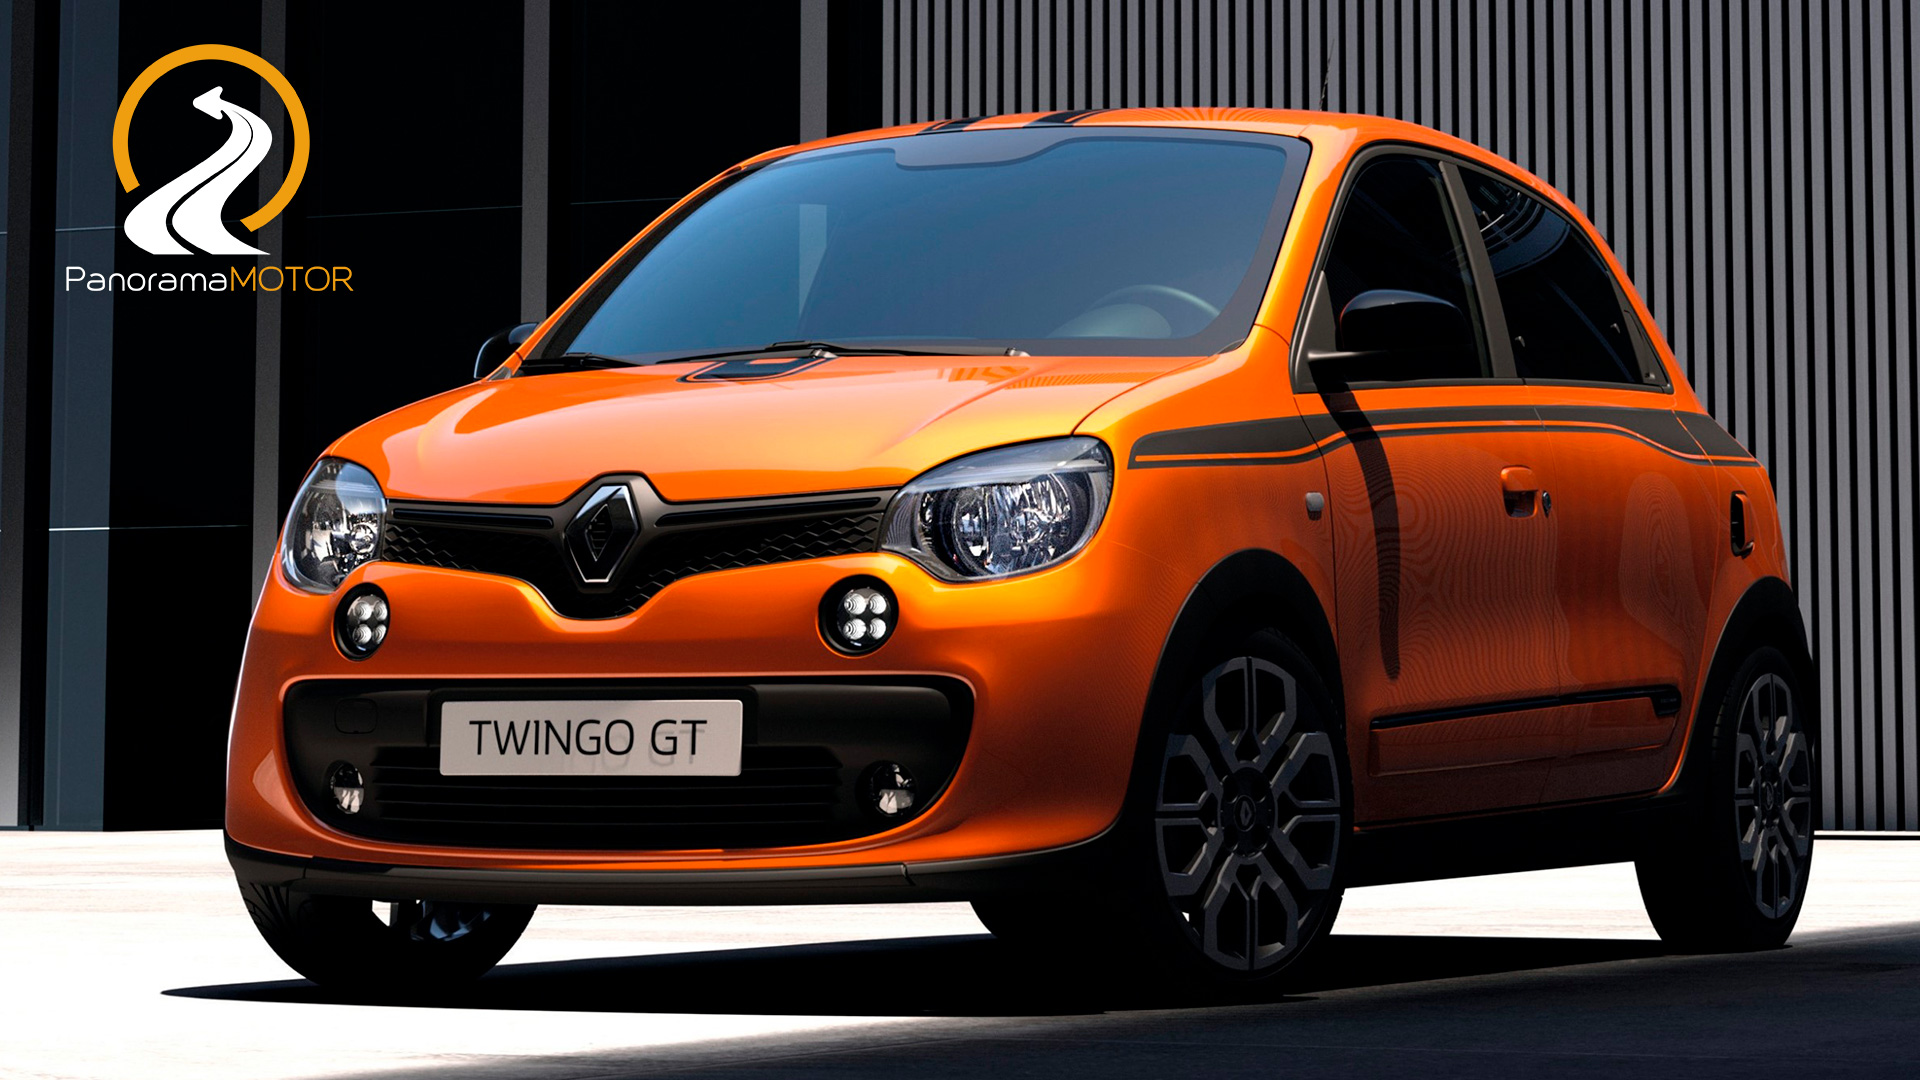 renault twingo gt panorama motor. Black Bedroom Furniture Sets. Home Design Ideas